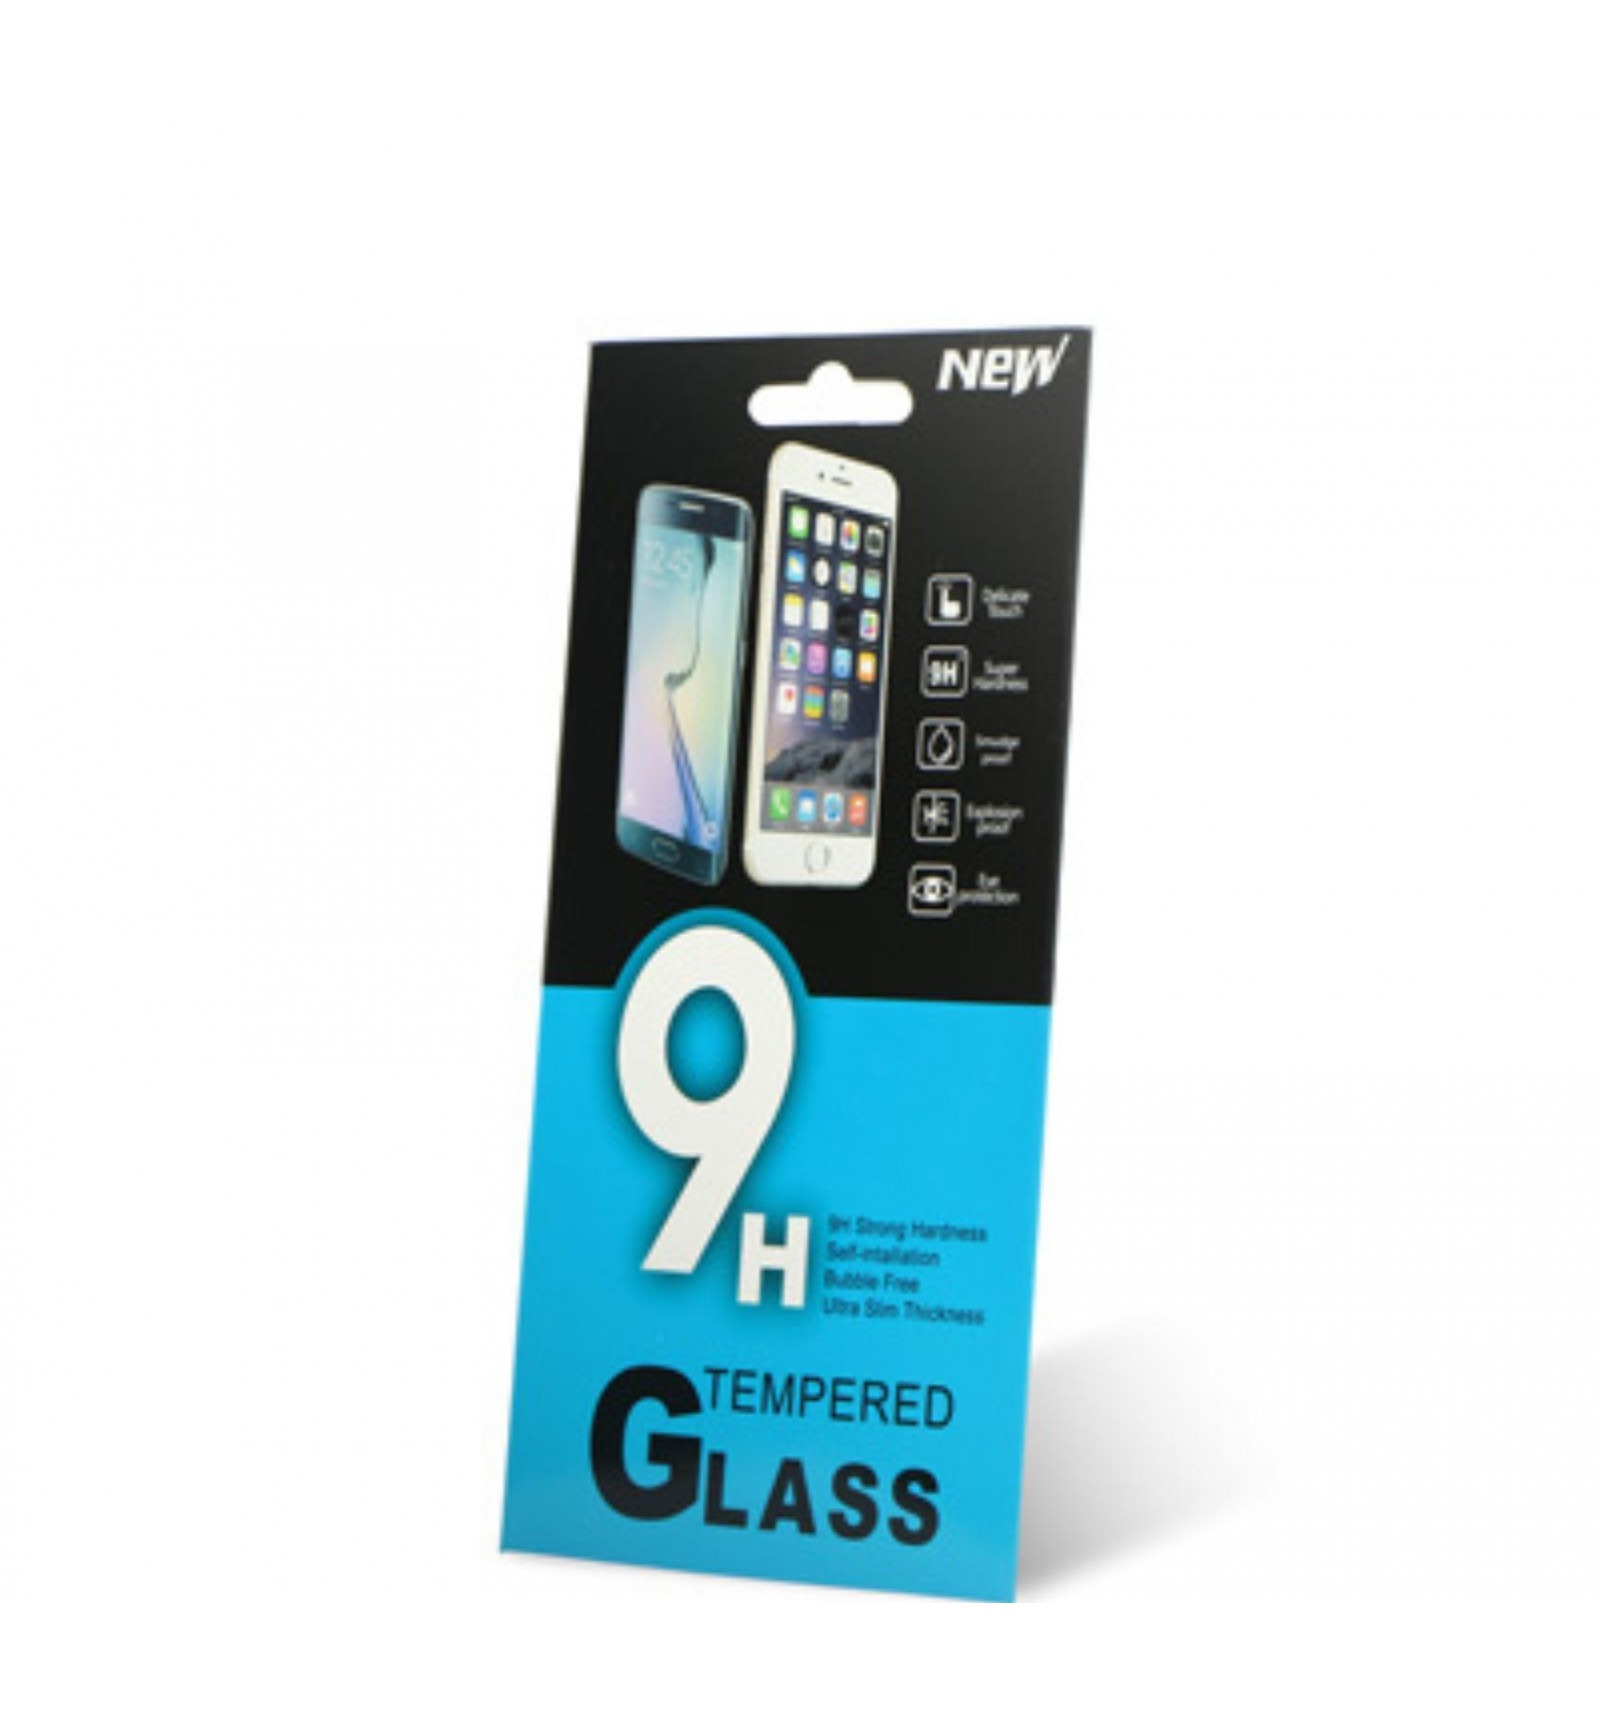 Harga ZAGBOX Tempered Glass Screen Protector For Samsung Tab S 8.0 Inch T700 Review Spesifikasi.